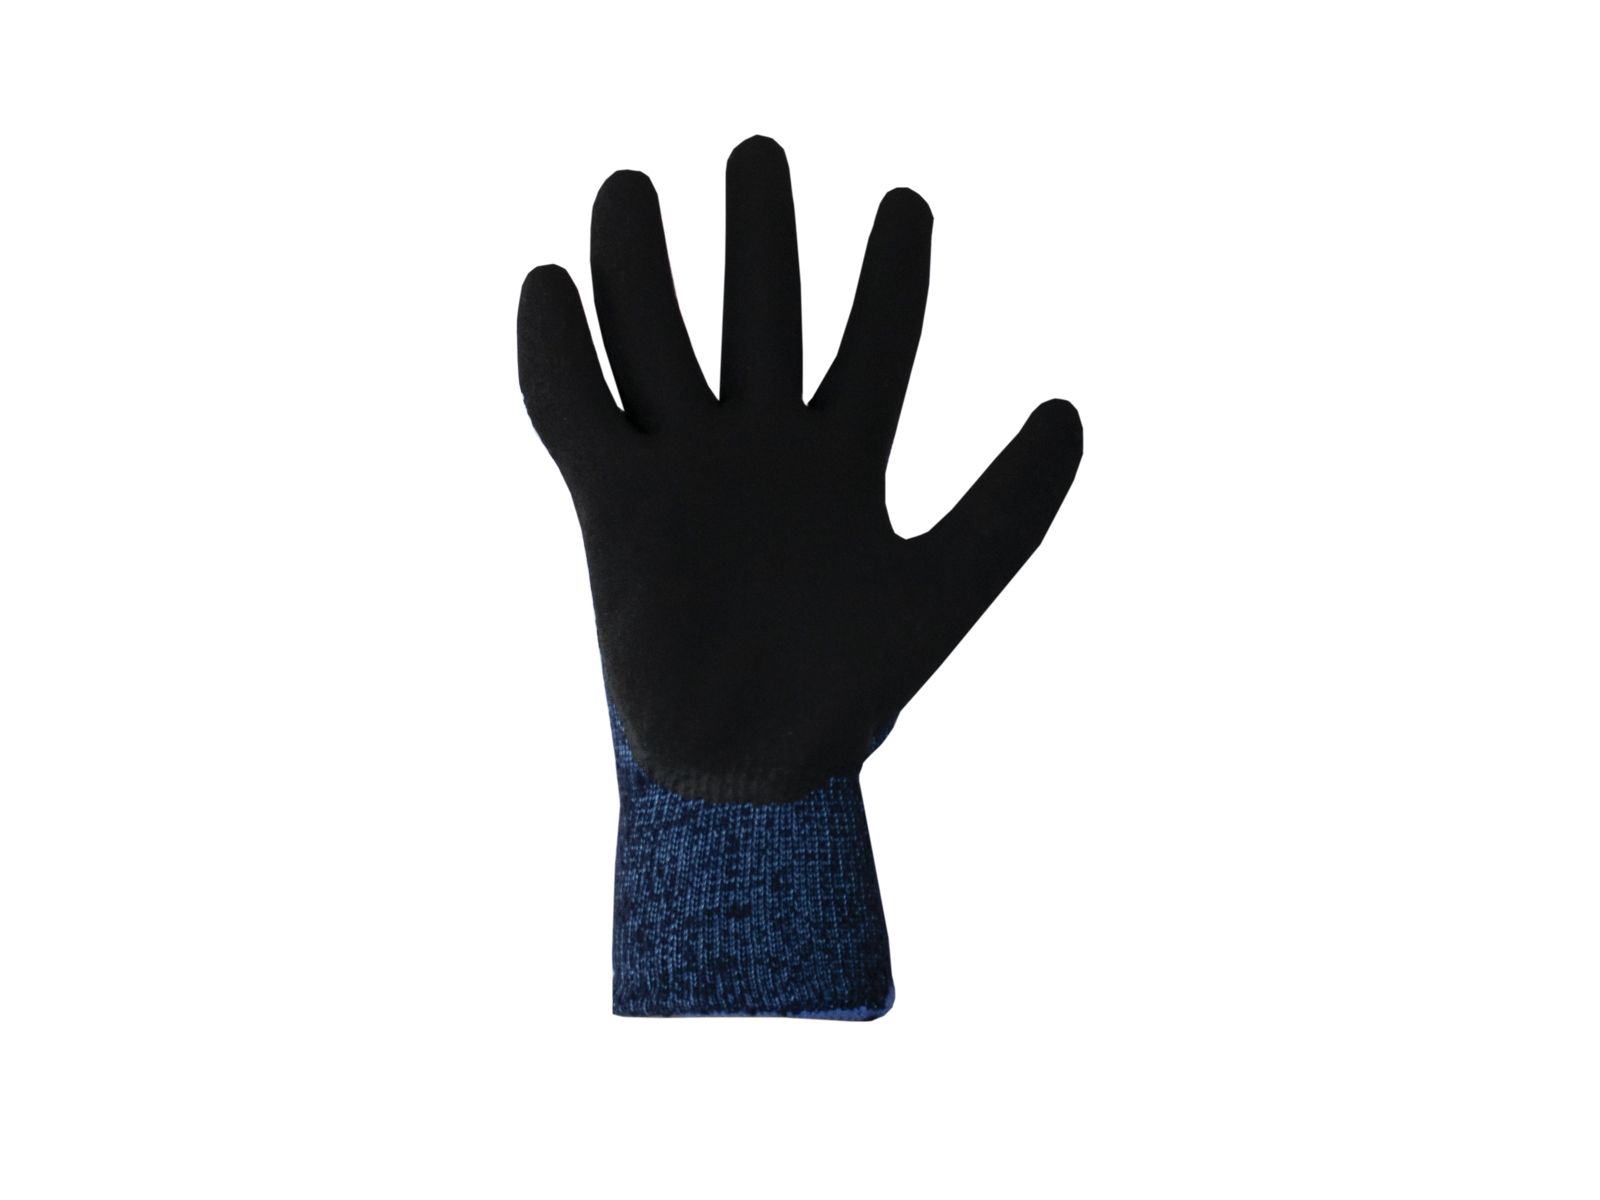 Samurai Thermo Cut 5 Safety Gloves w/ Excellent Thermal Properties - Multipack